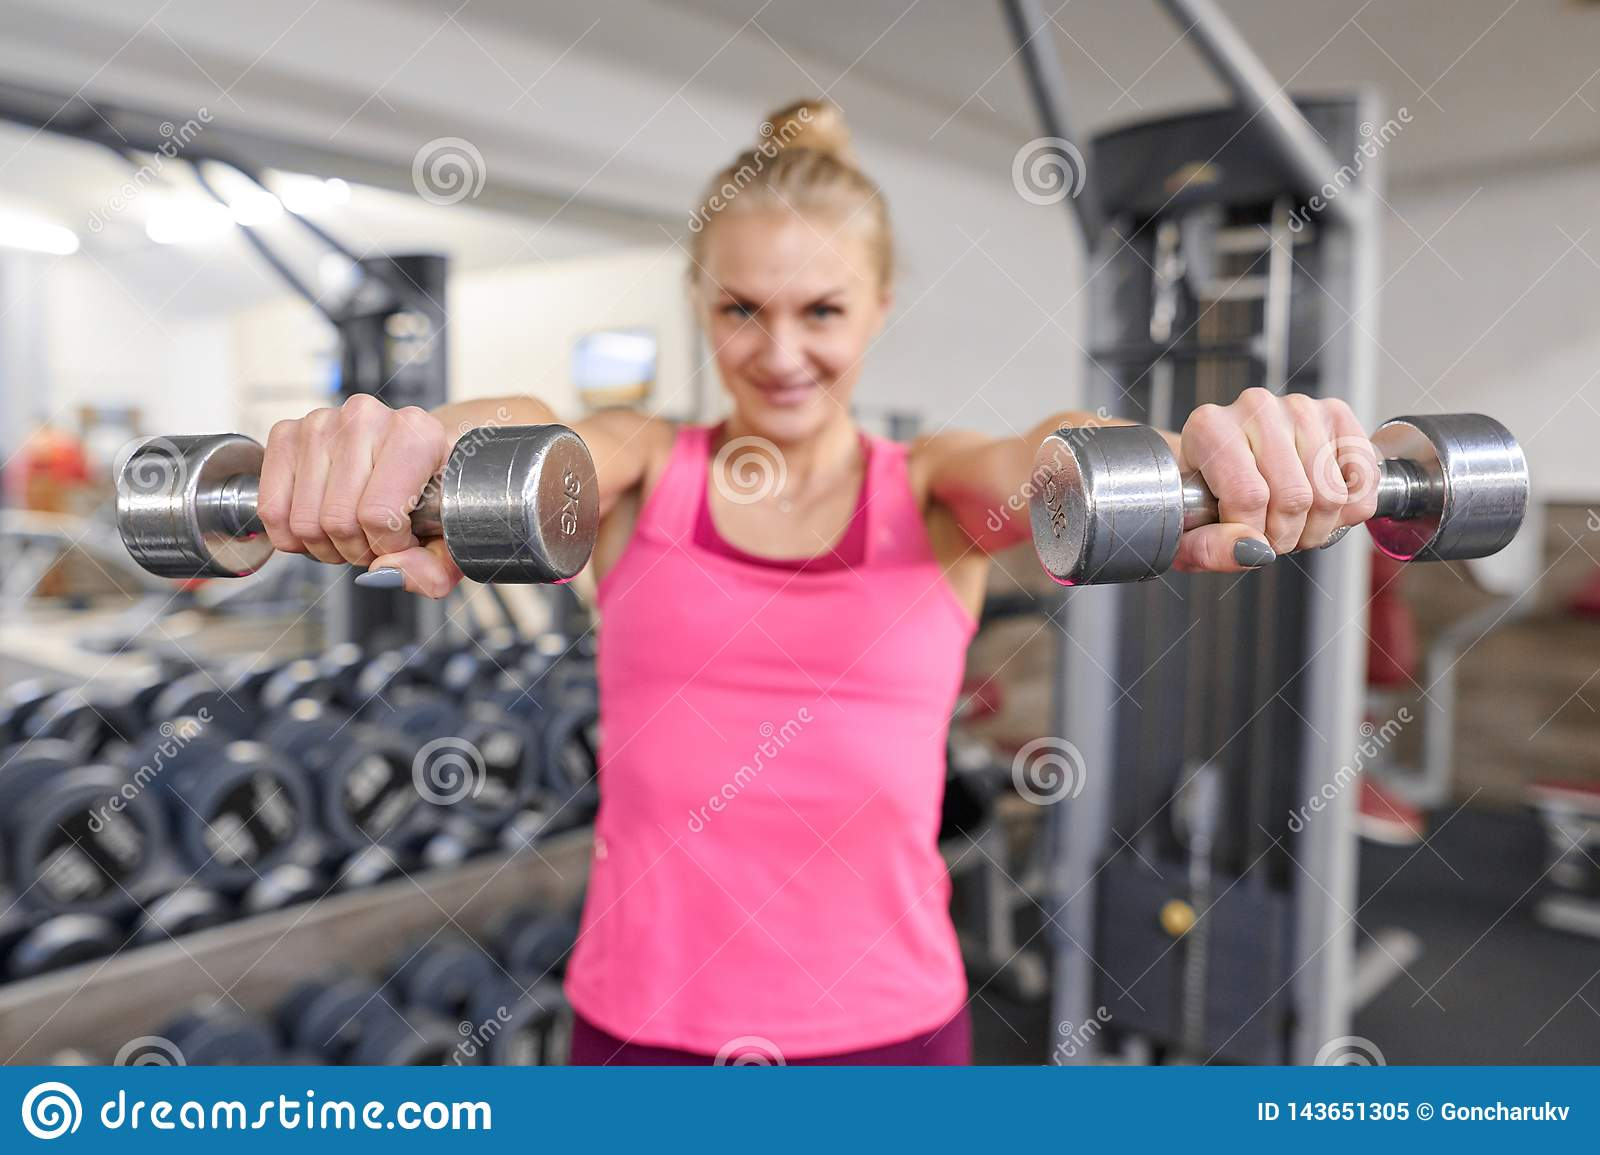 Young sporty blond woman in the gym. Woman holding metal weights, focus on kettlebells. People fitness sport healthy lifestyle